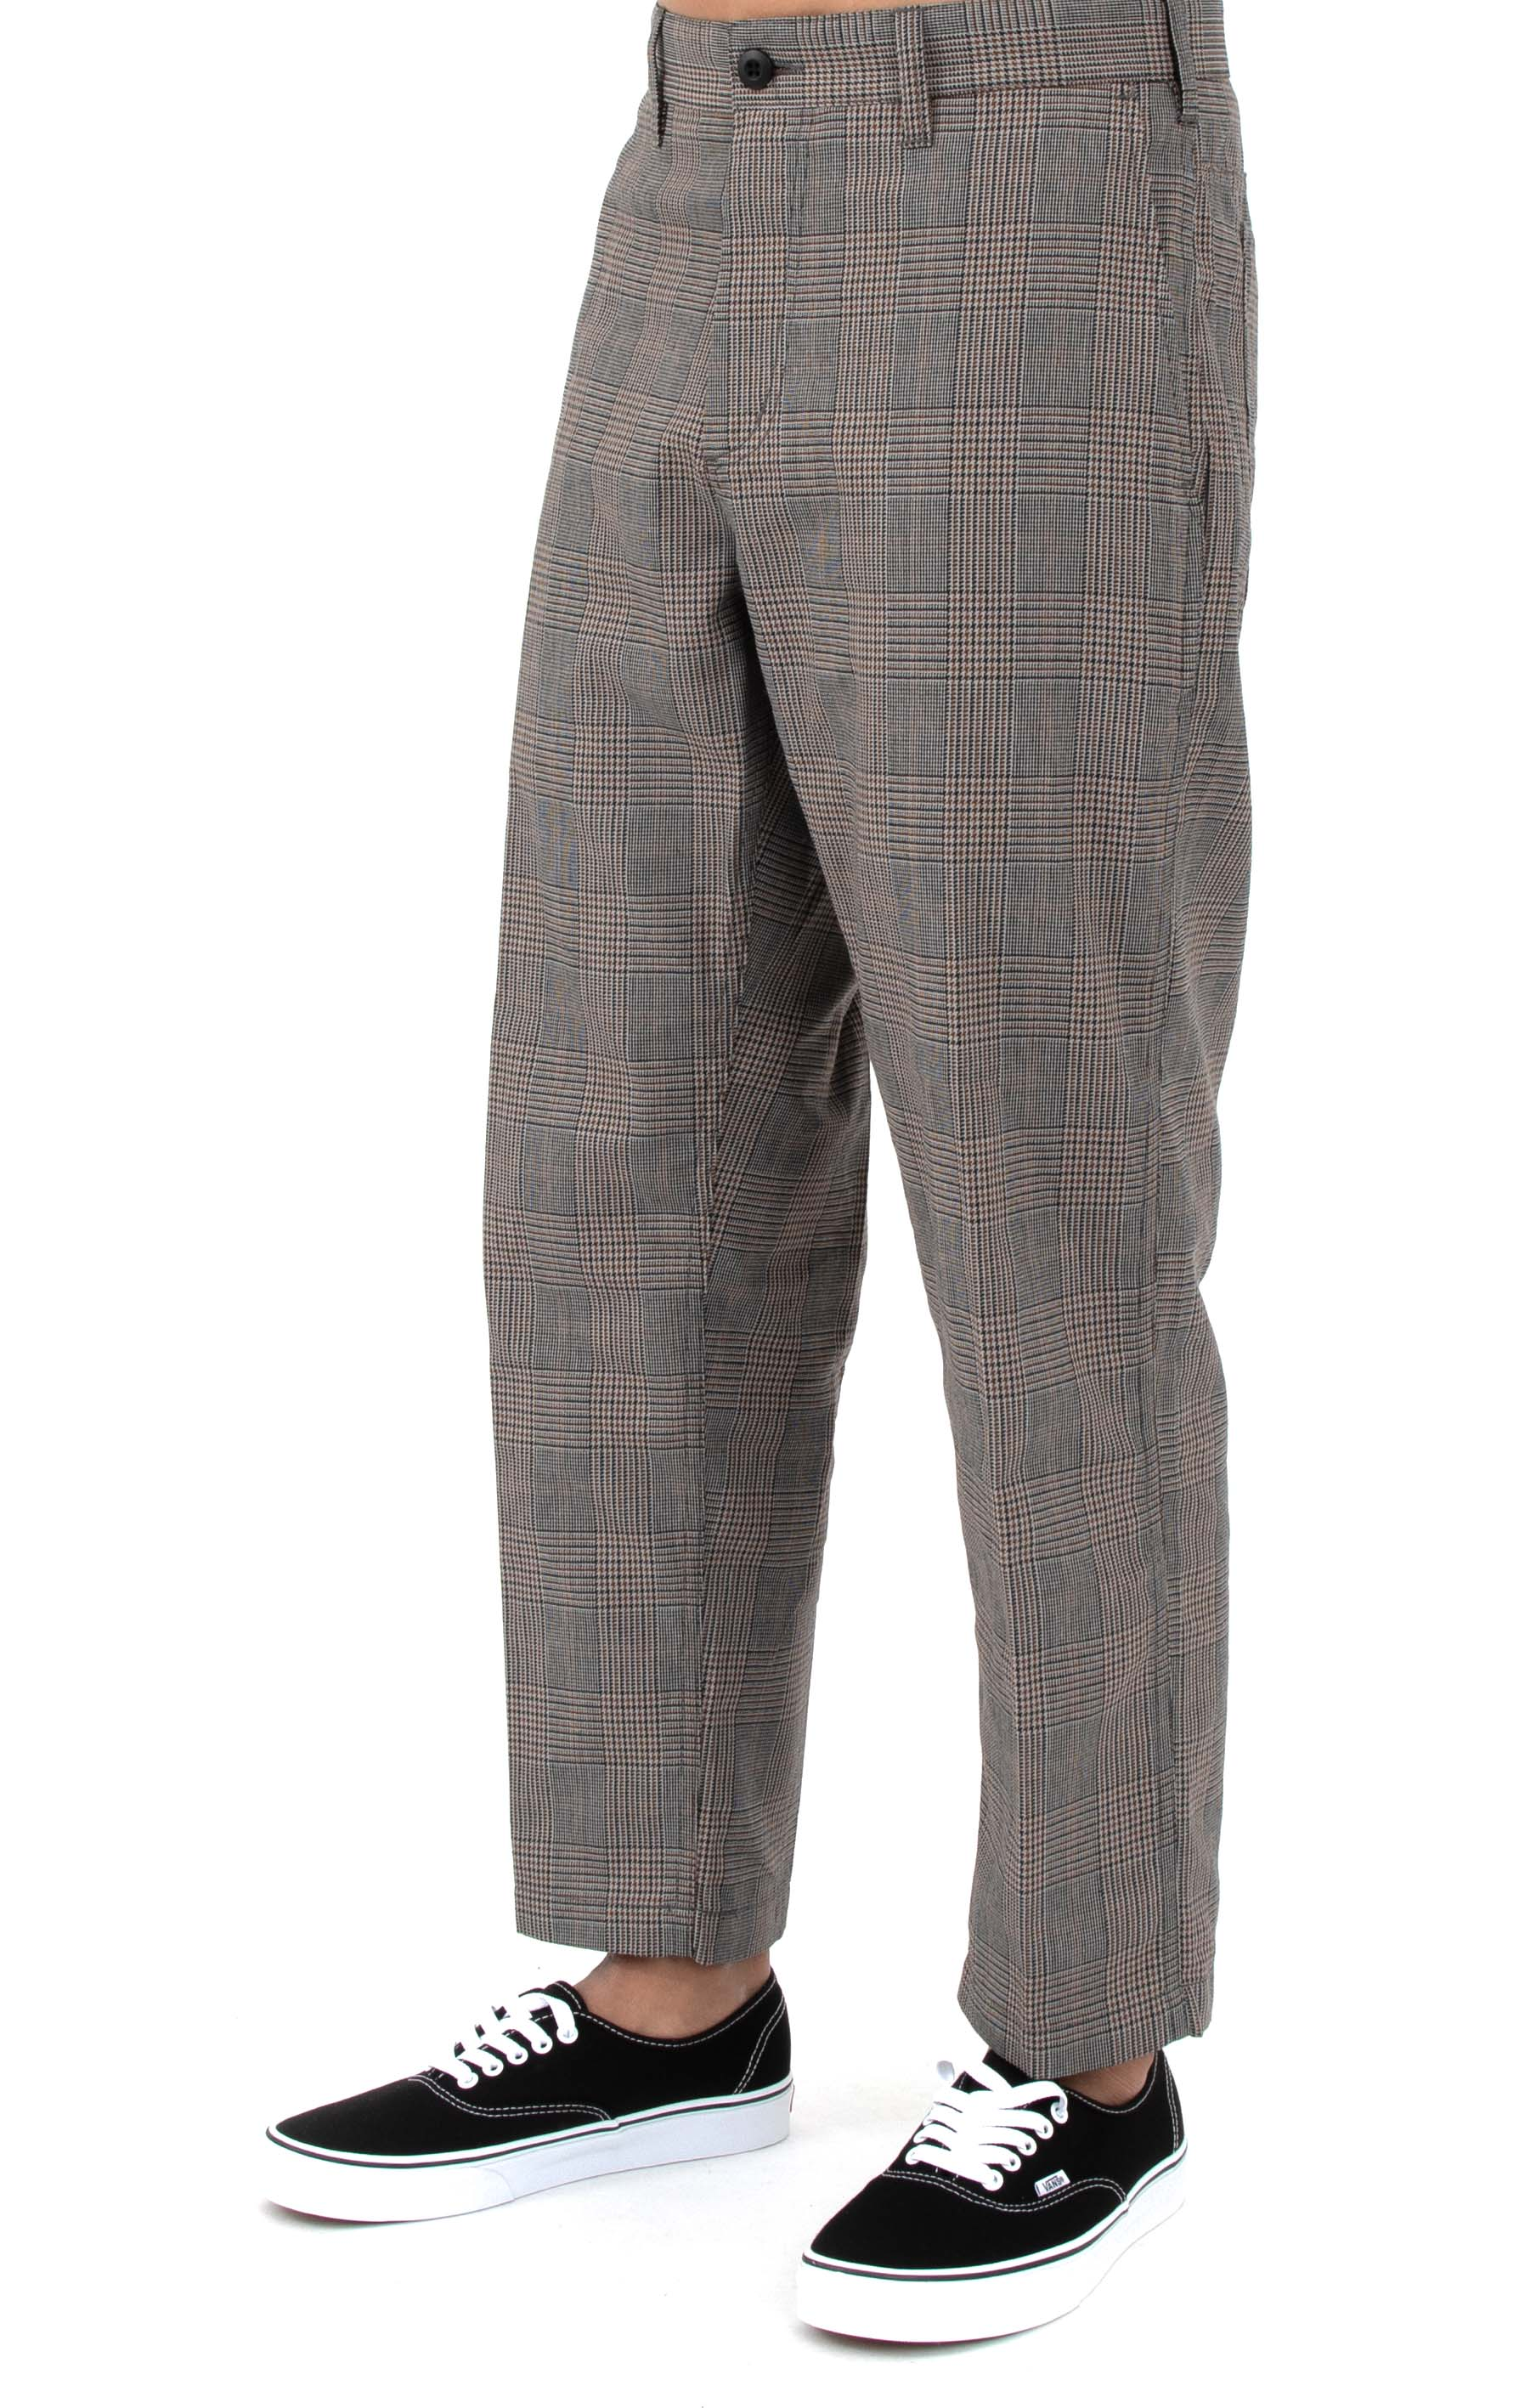 Straggler Plaid Carpenter Pants - Black Multi